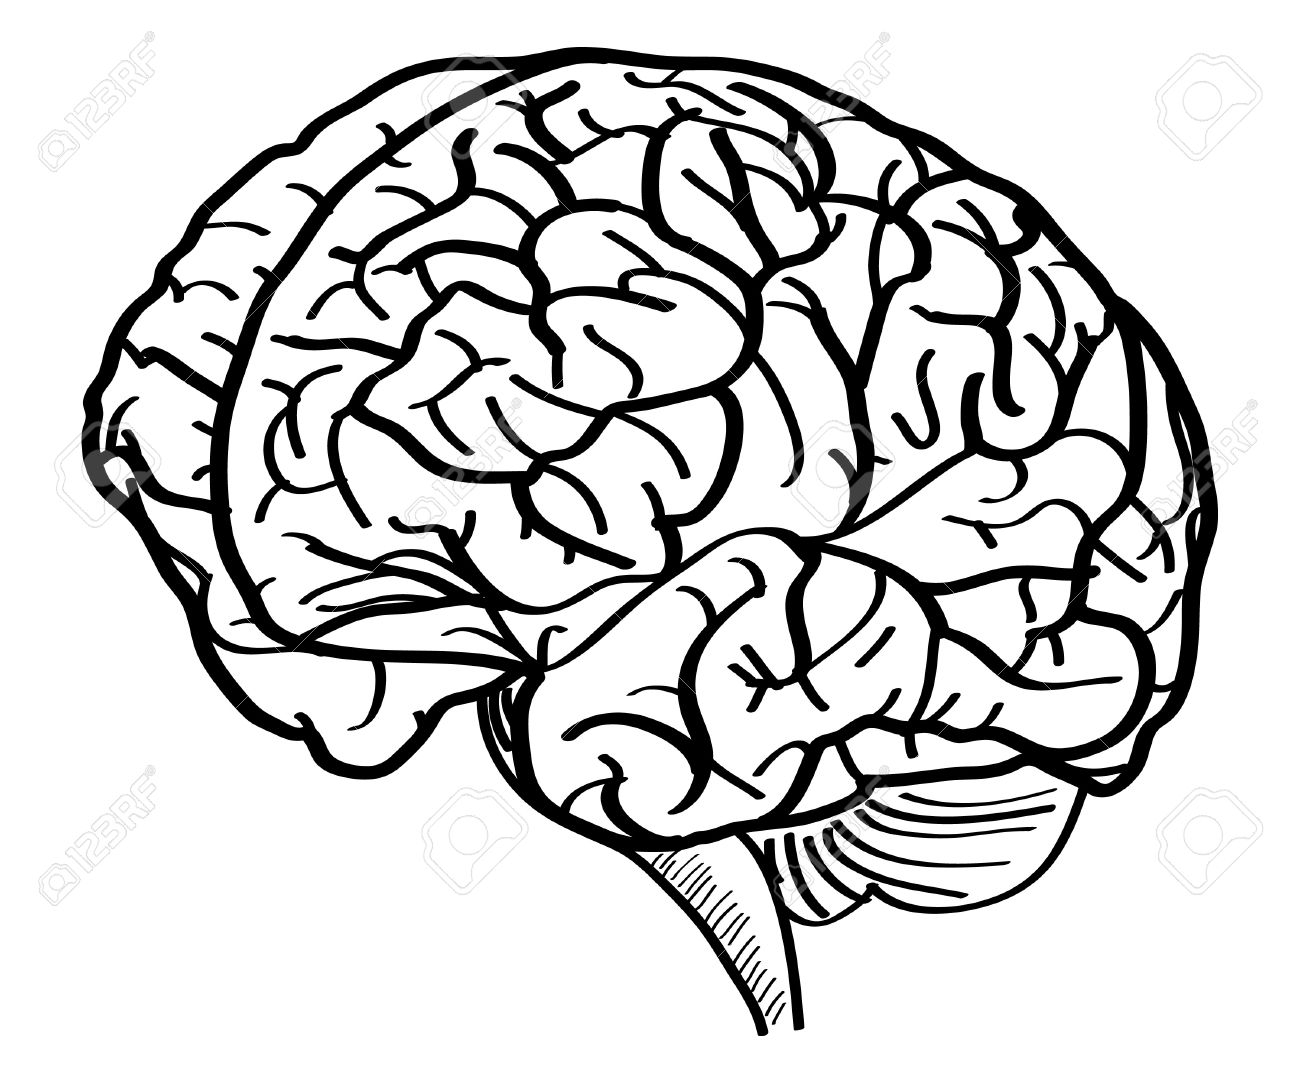 brain outline clipart black and white